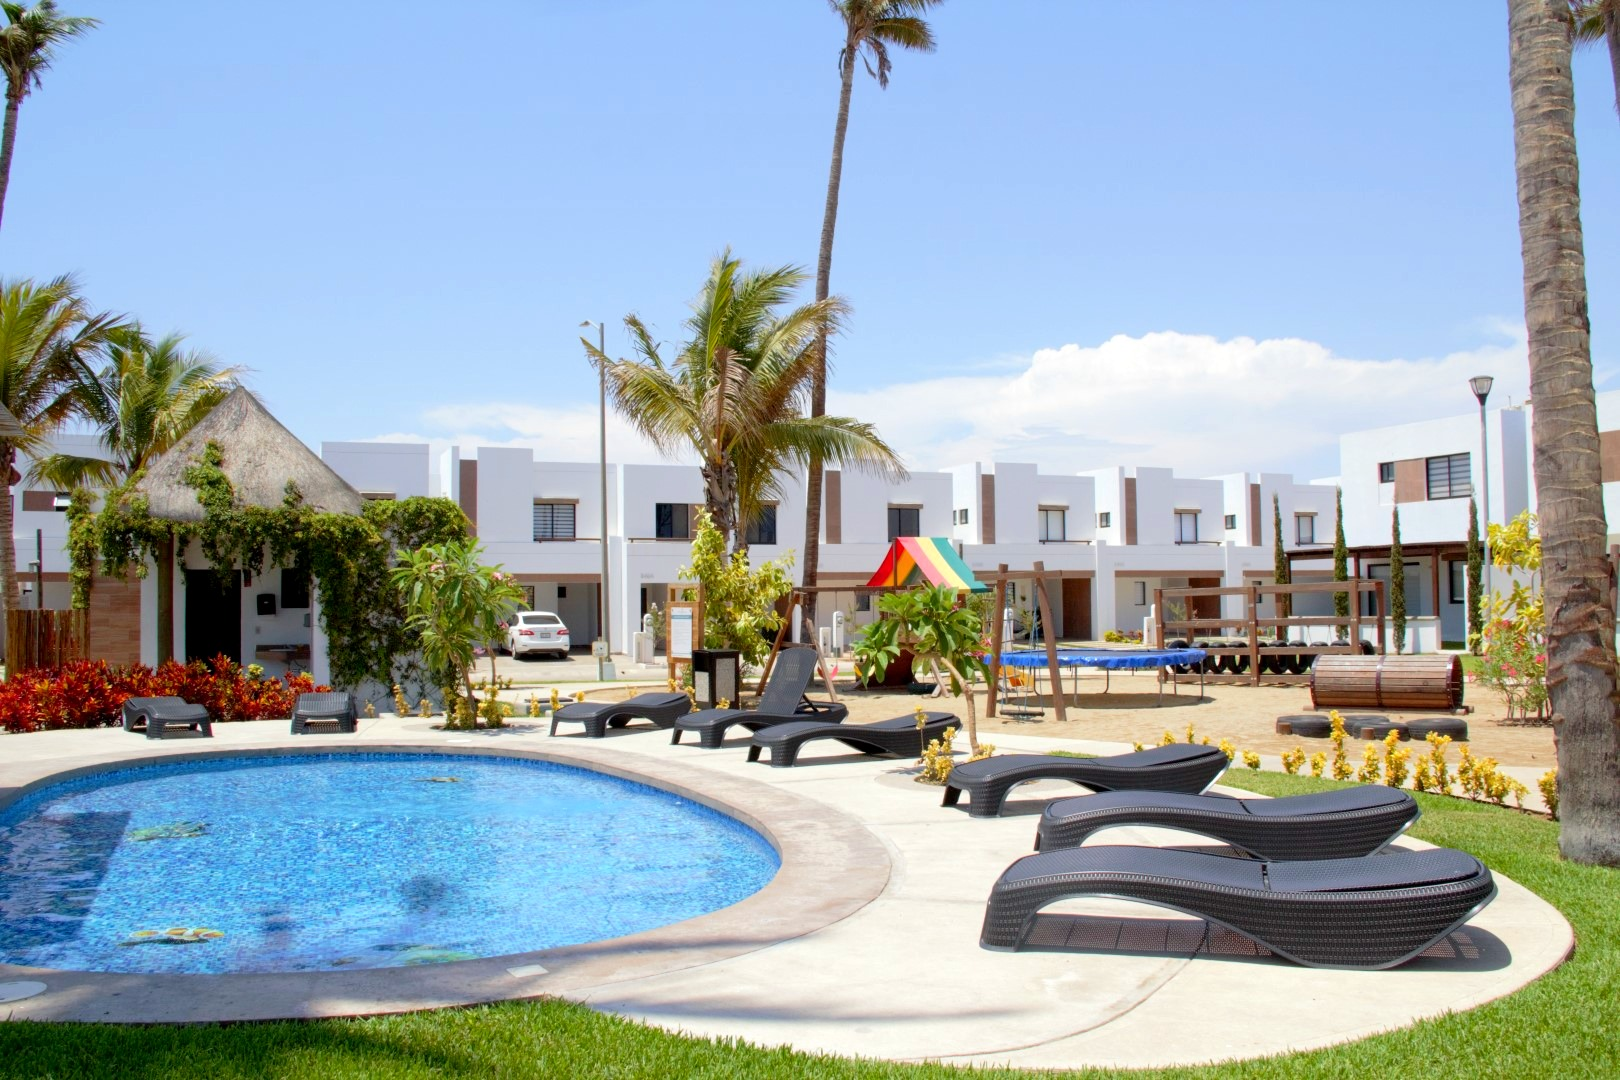 Palmilla pool and loungers.